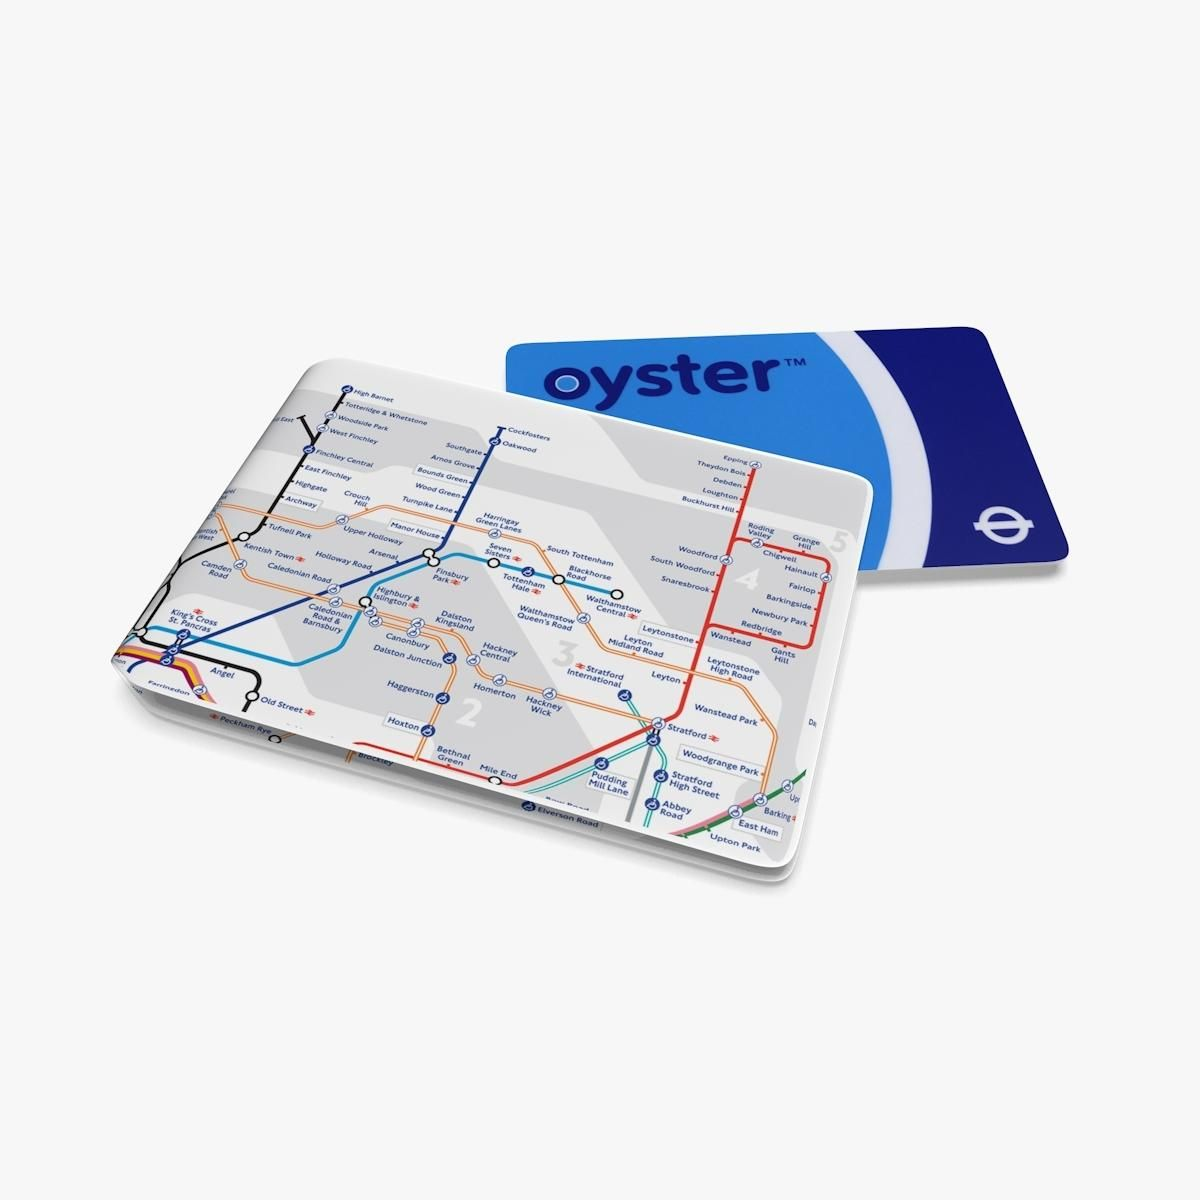 london underground oyster card  oyster card london